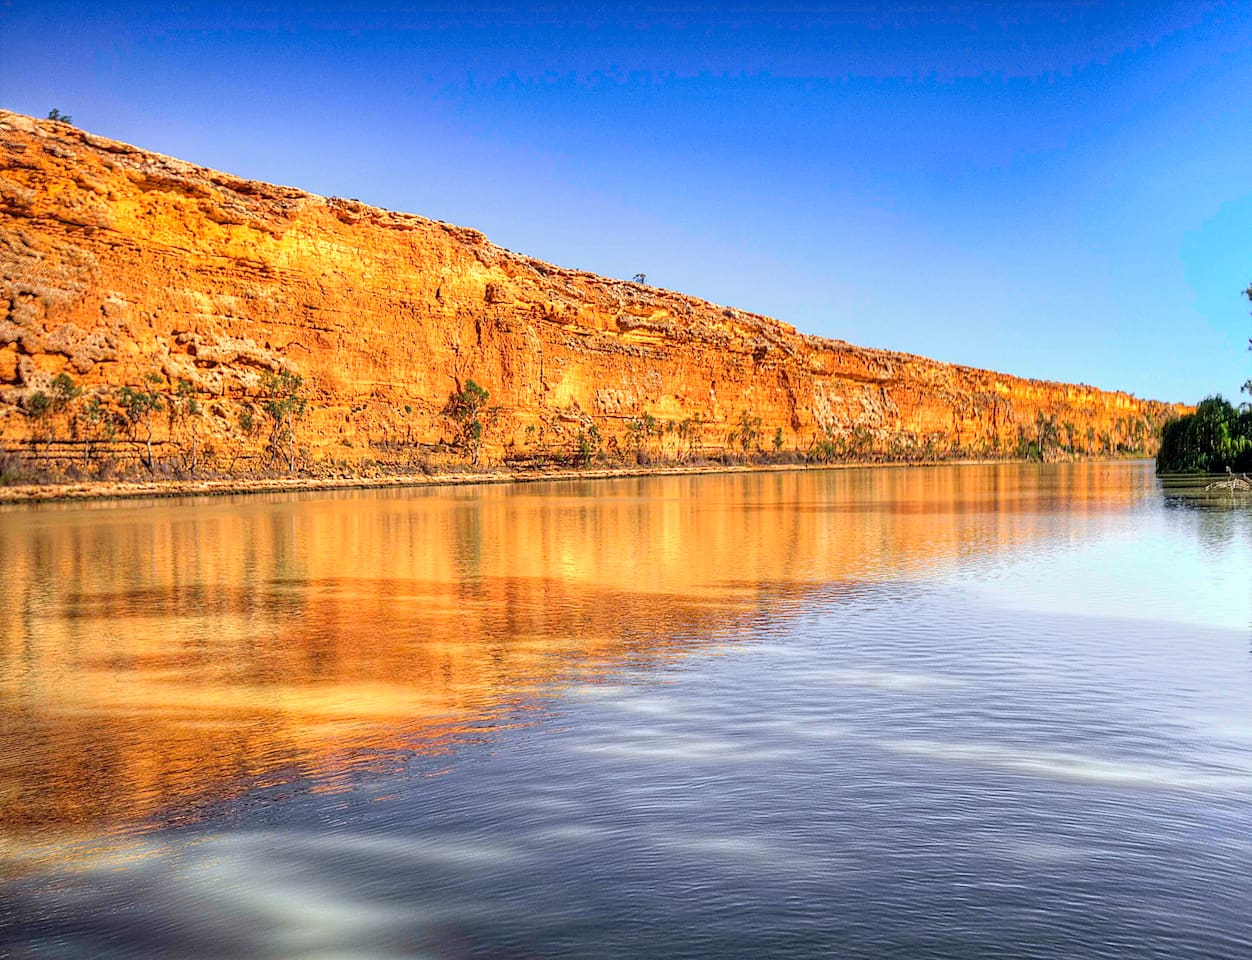 Riverfront property at Big Bend offering majestic views and location